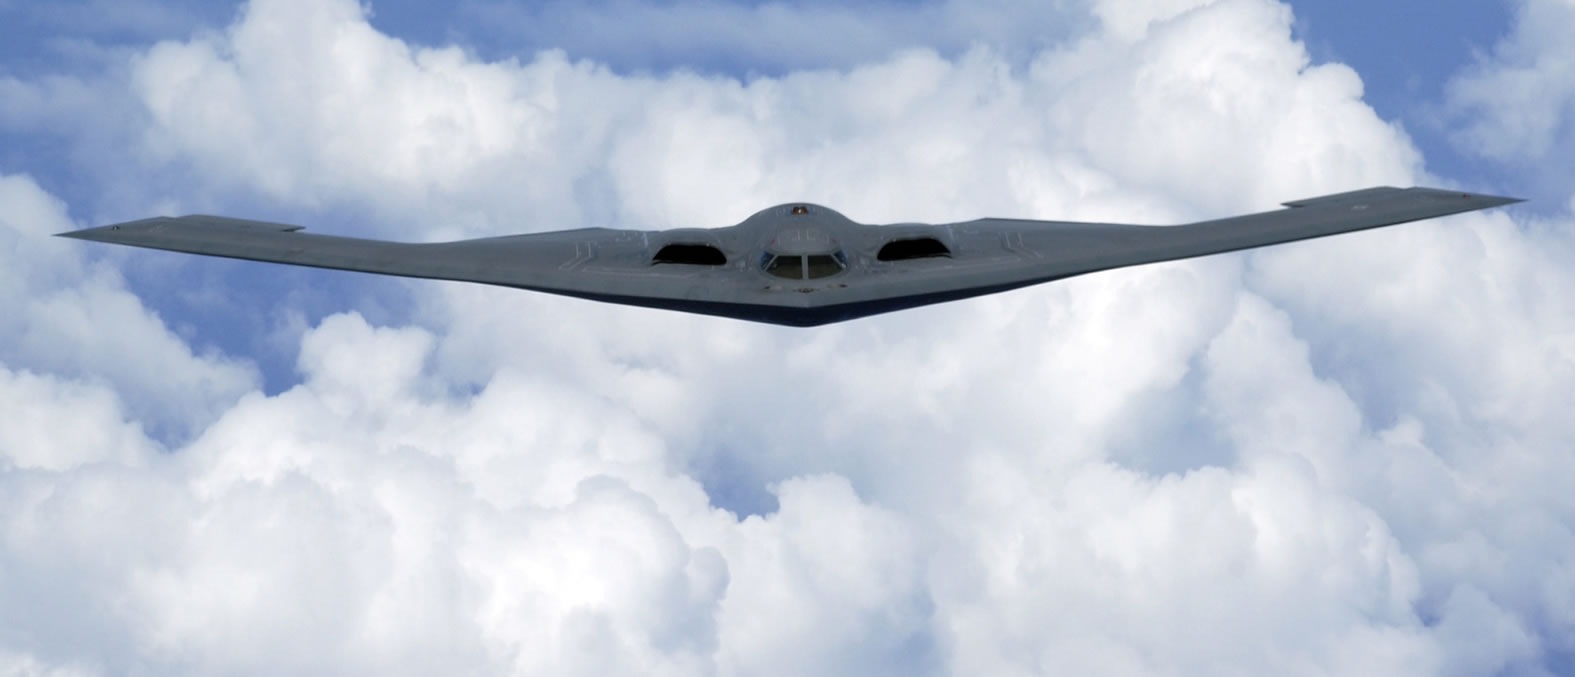 B2 Bomber Military Aircraft Wallpaper Wallpapers Gallery 1575x677